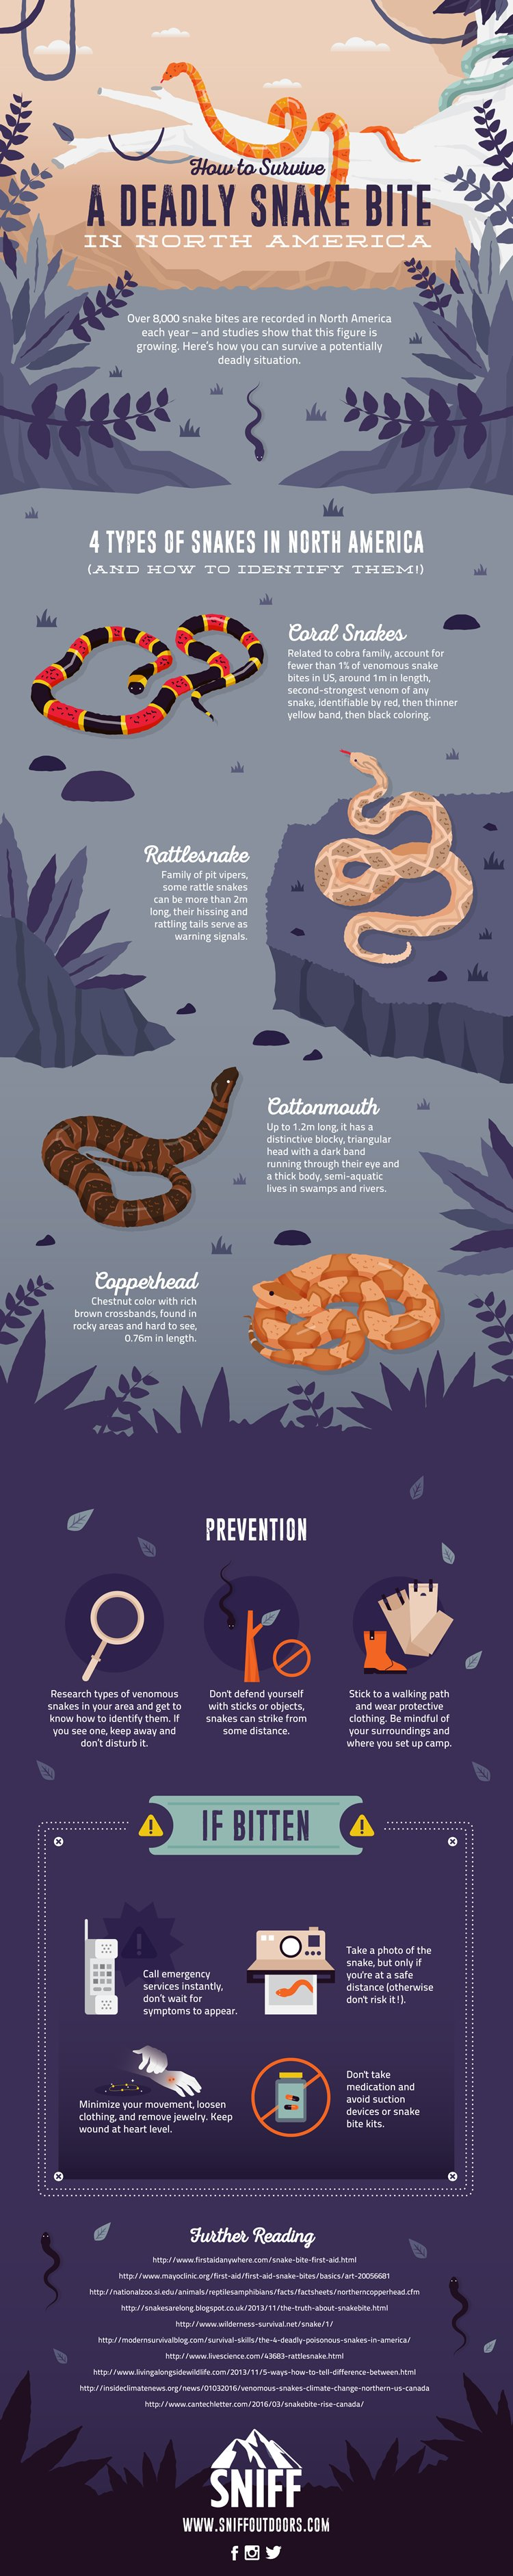 prevent snake bite hiking with kids